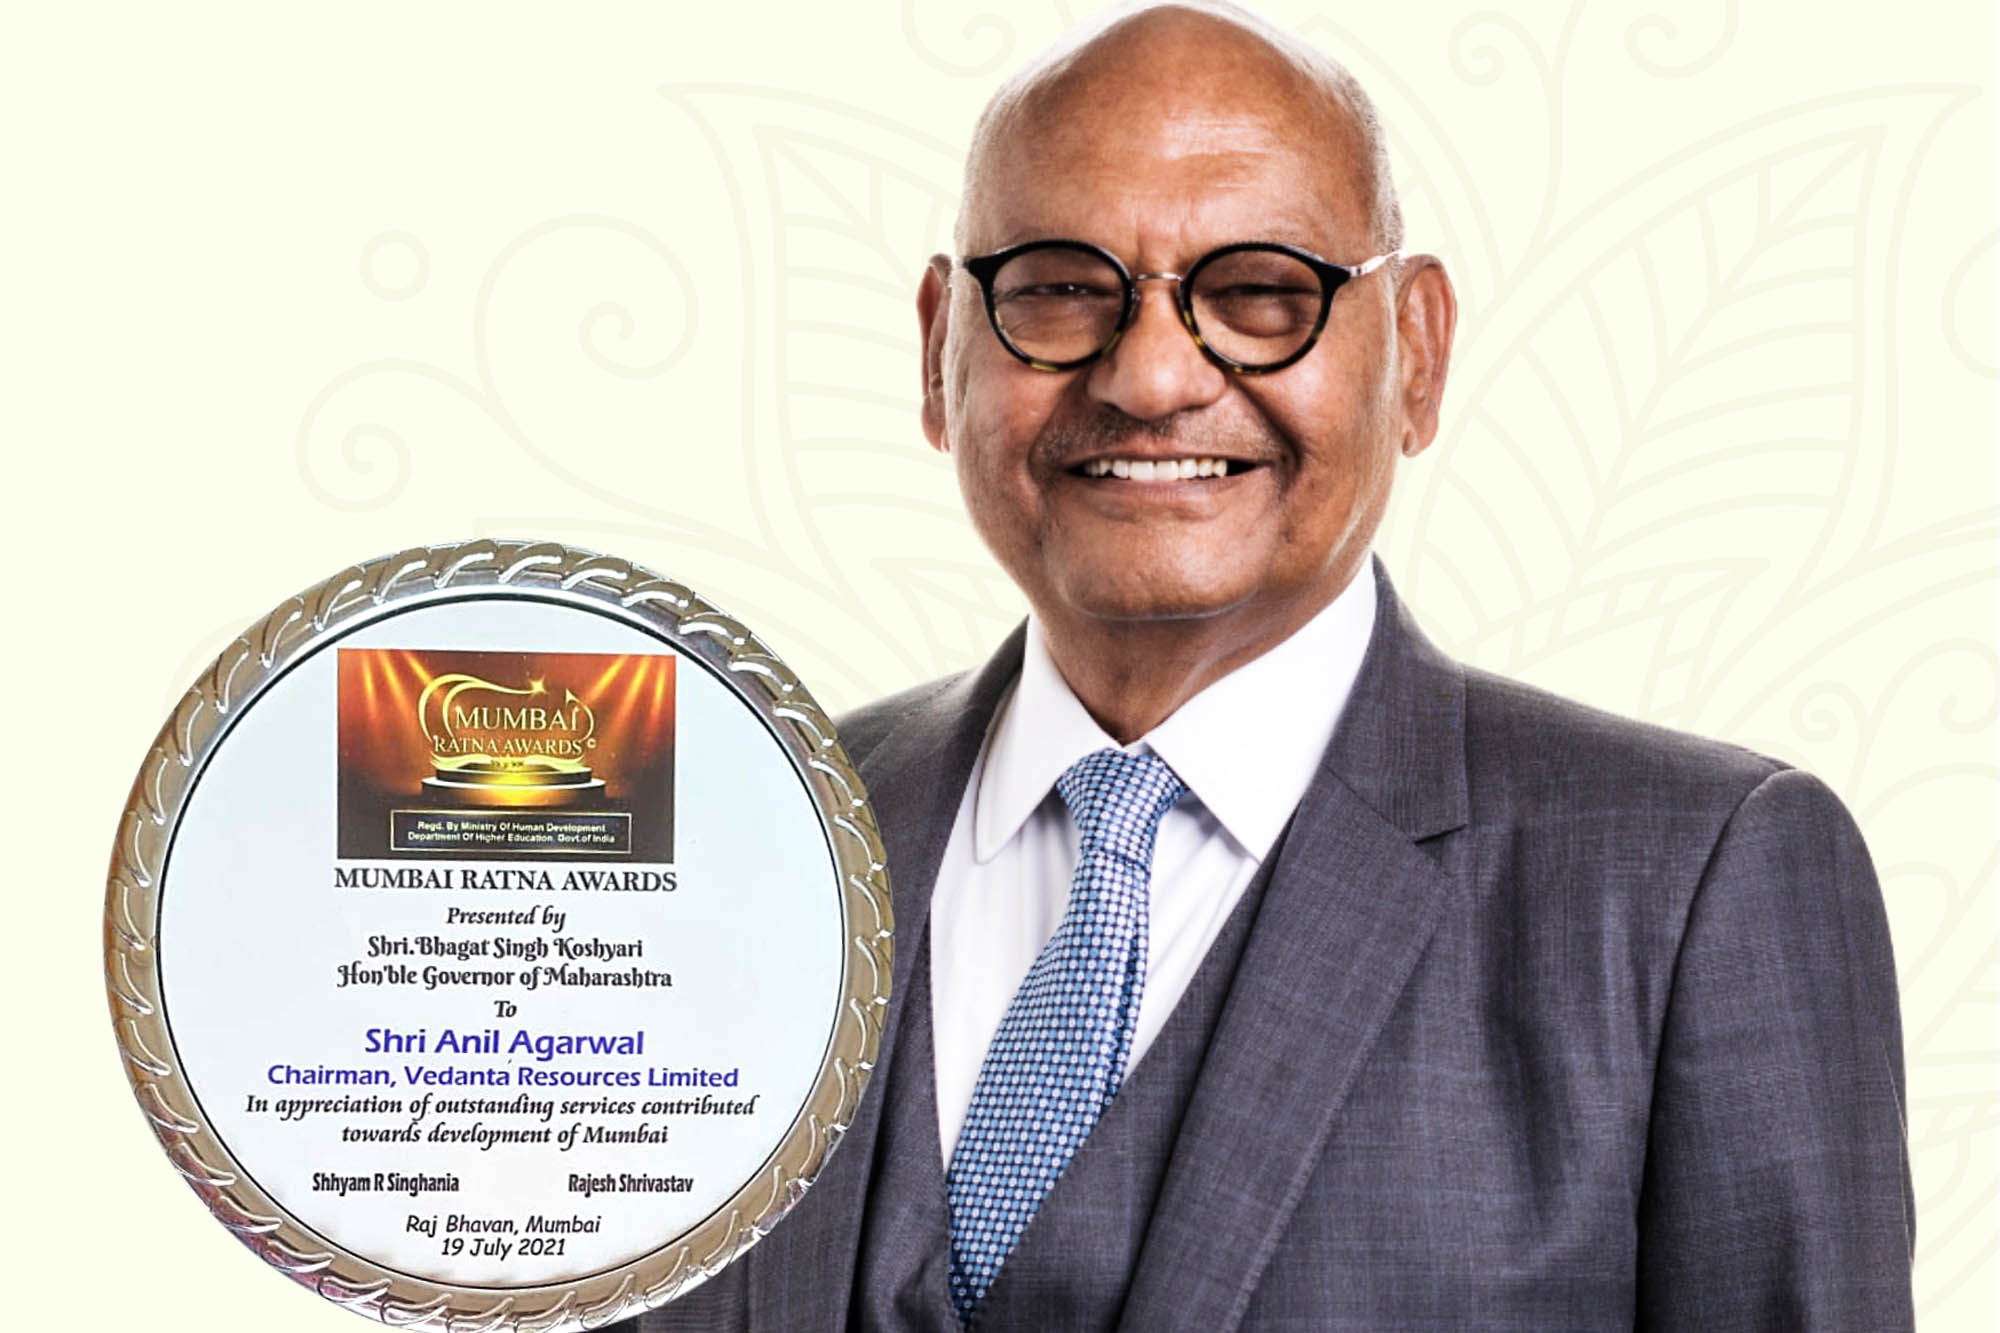 Vedanta Chairman Anil Agarwal conferred with Mumbai Ratna Award for outstanding services towards the development of the city